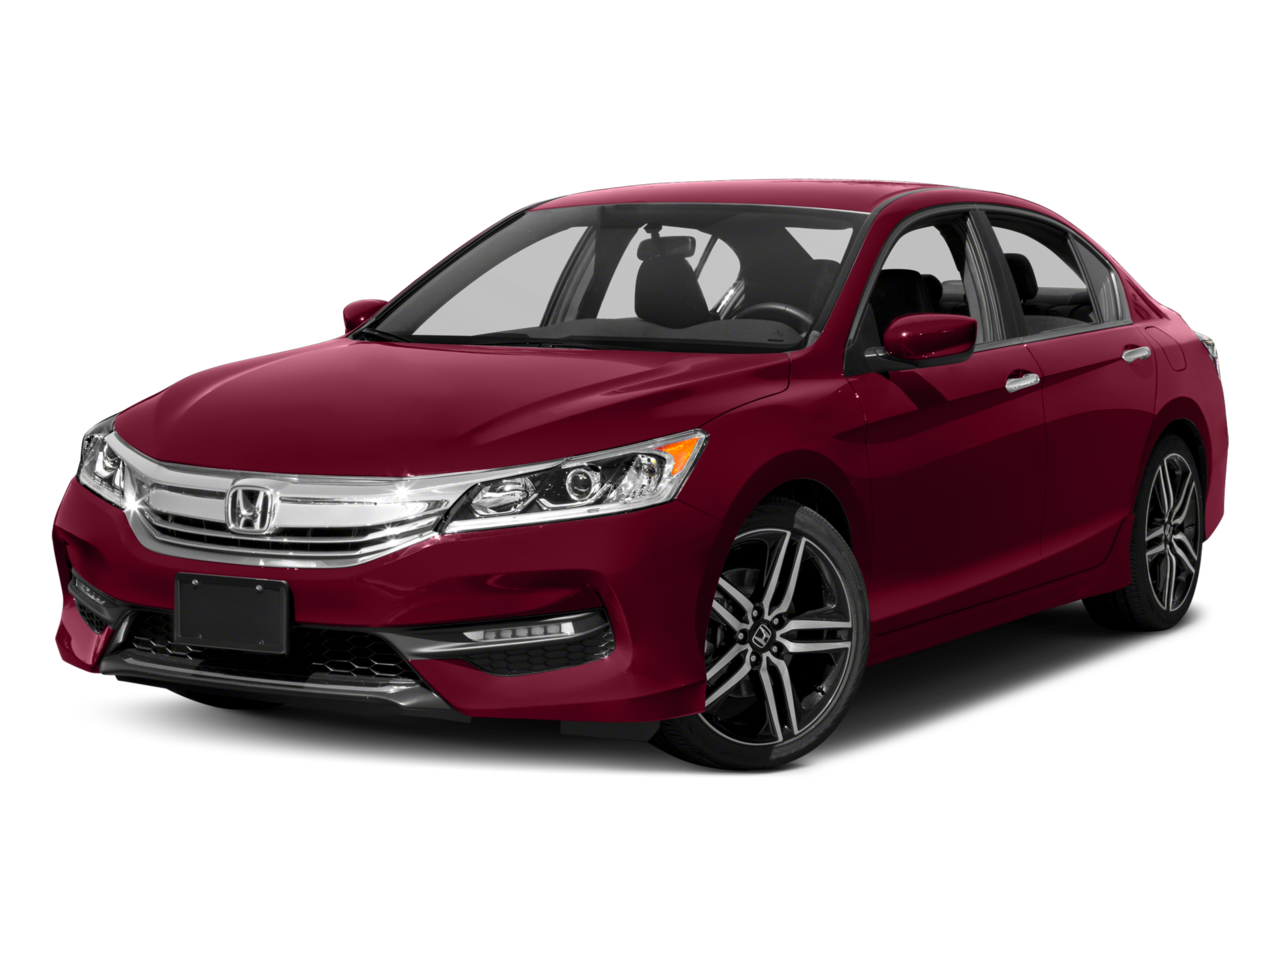 2017 Honda Accord - Wilmington, DE